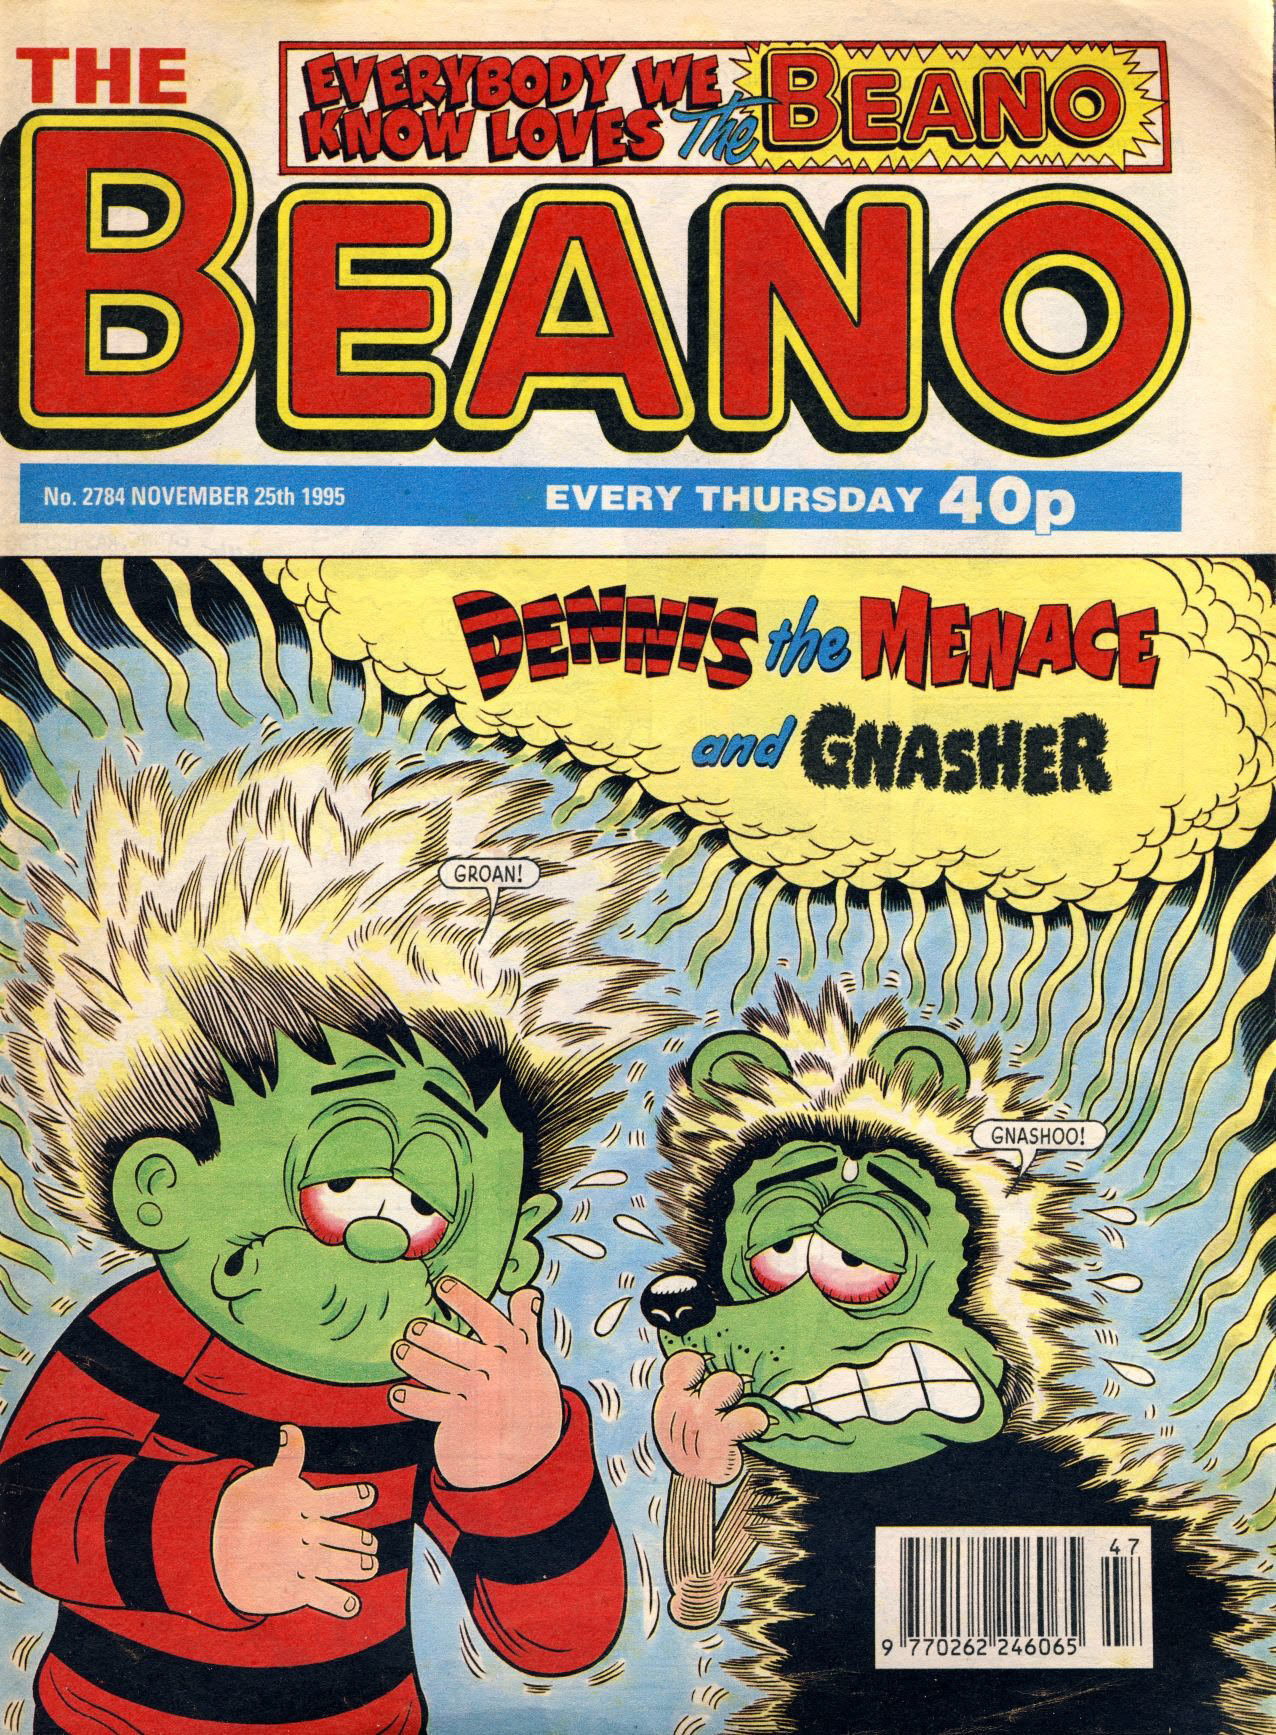 1995 November 25th BEANO vintage comic Good Gift Christmas Present Birthday Anniversary ref104a A vintage comic in good read condition. Please see larger photo and full description for details.